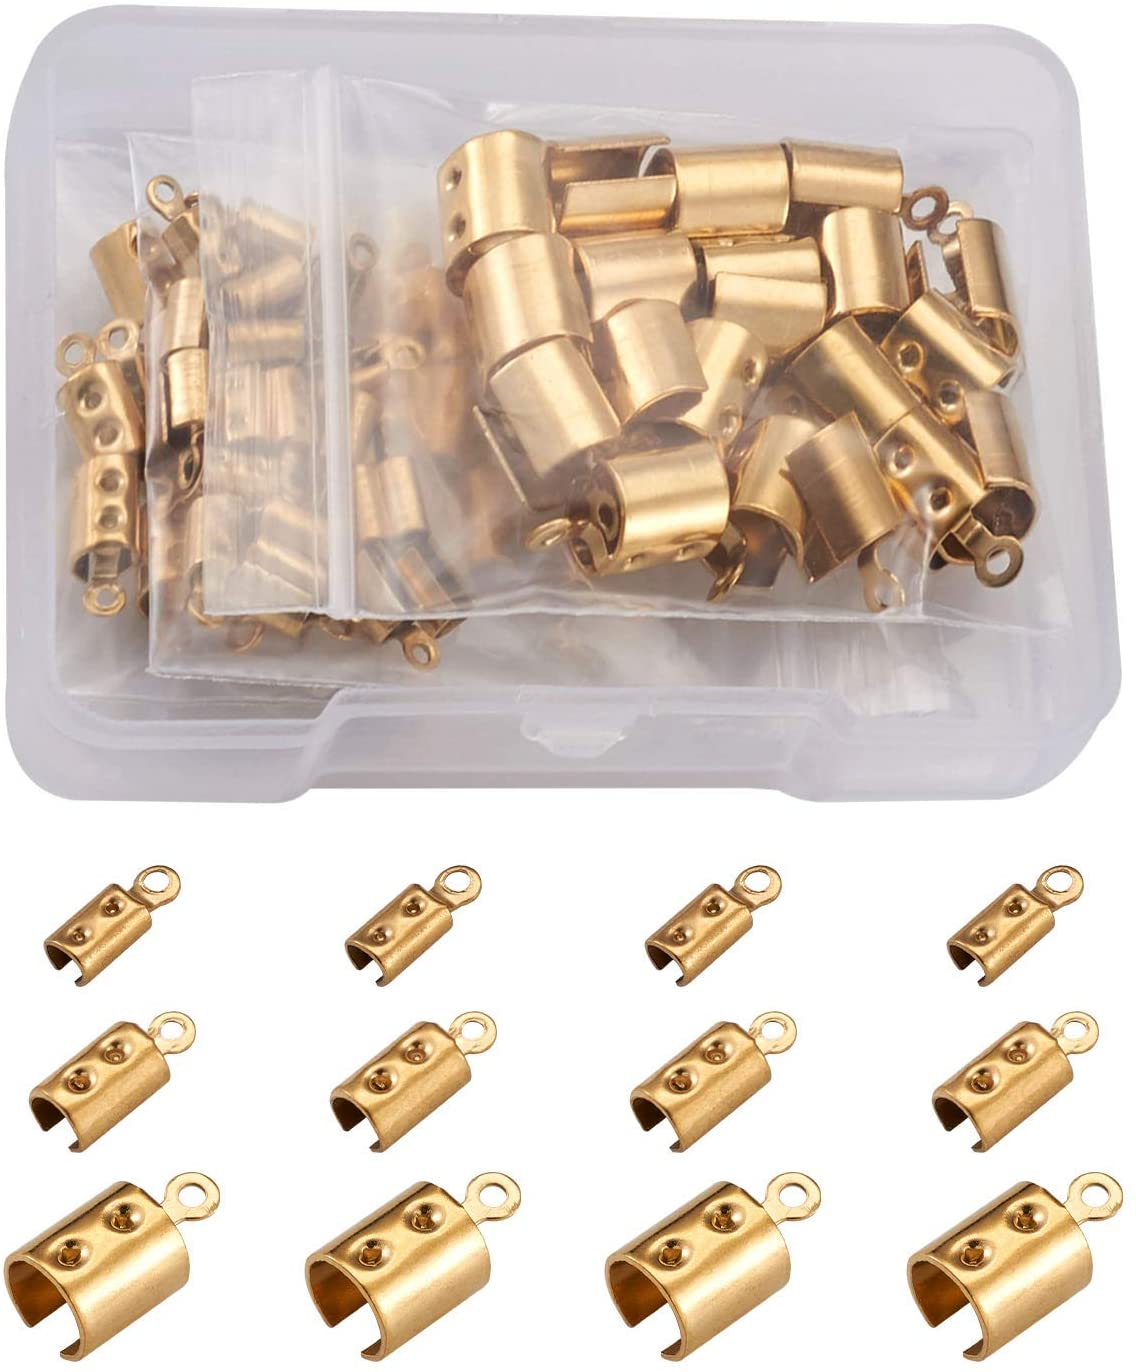 MEGA PET 60PCS STAINLESS STEEL FOLD OVER CRIMP CORD ENDS GOLDEN FOLDING LEATHER RIBBON ENDING CLASP TIPS END CLAMP 3   4   6.5MM FOR CONNECTOR COMPONENTS JEWELRY MAKING